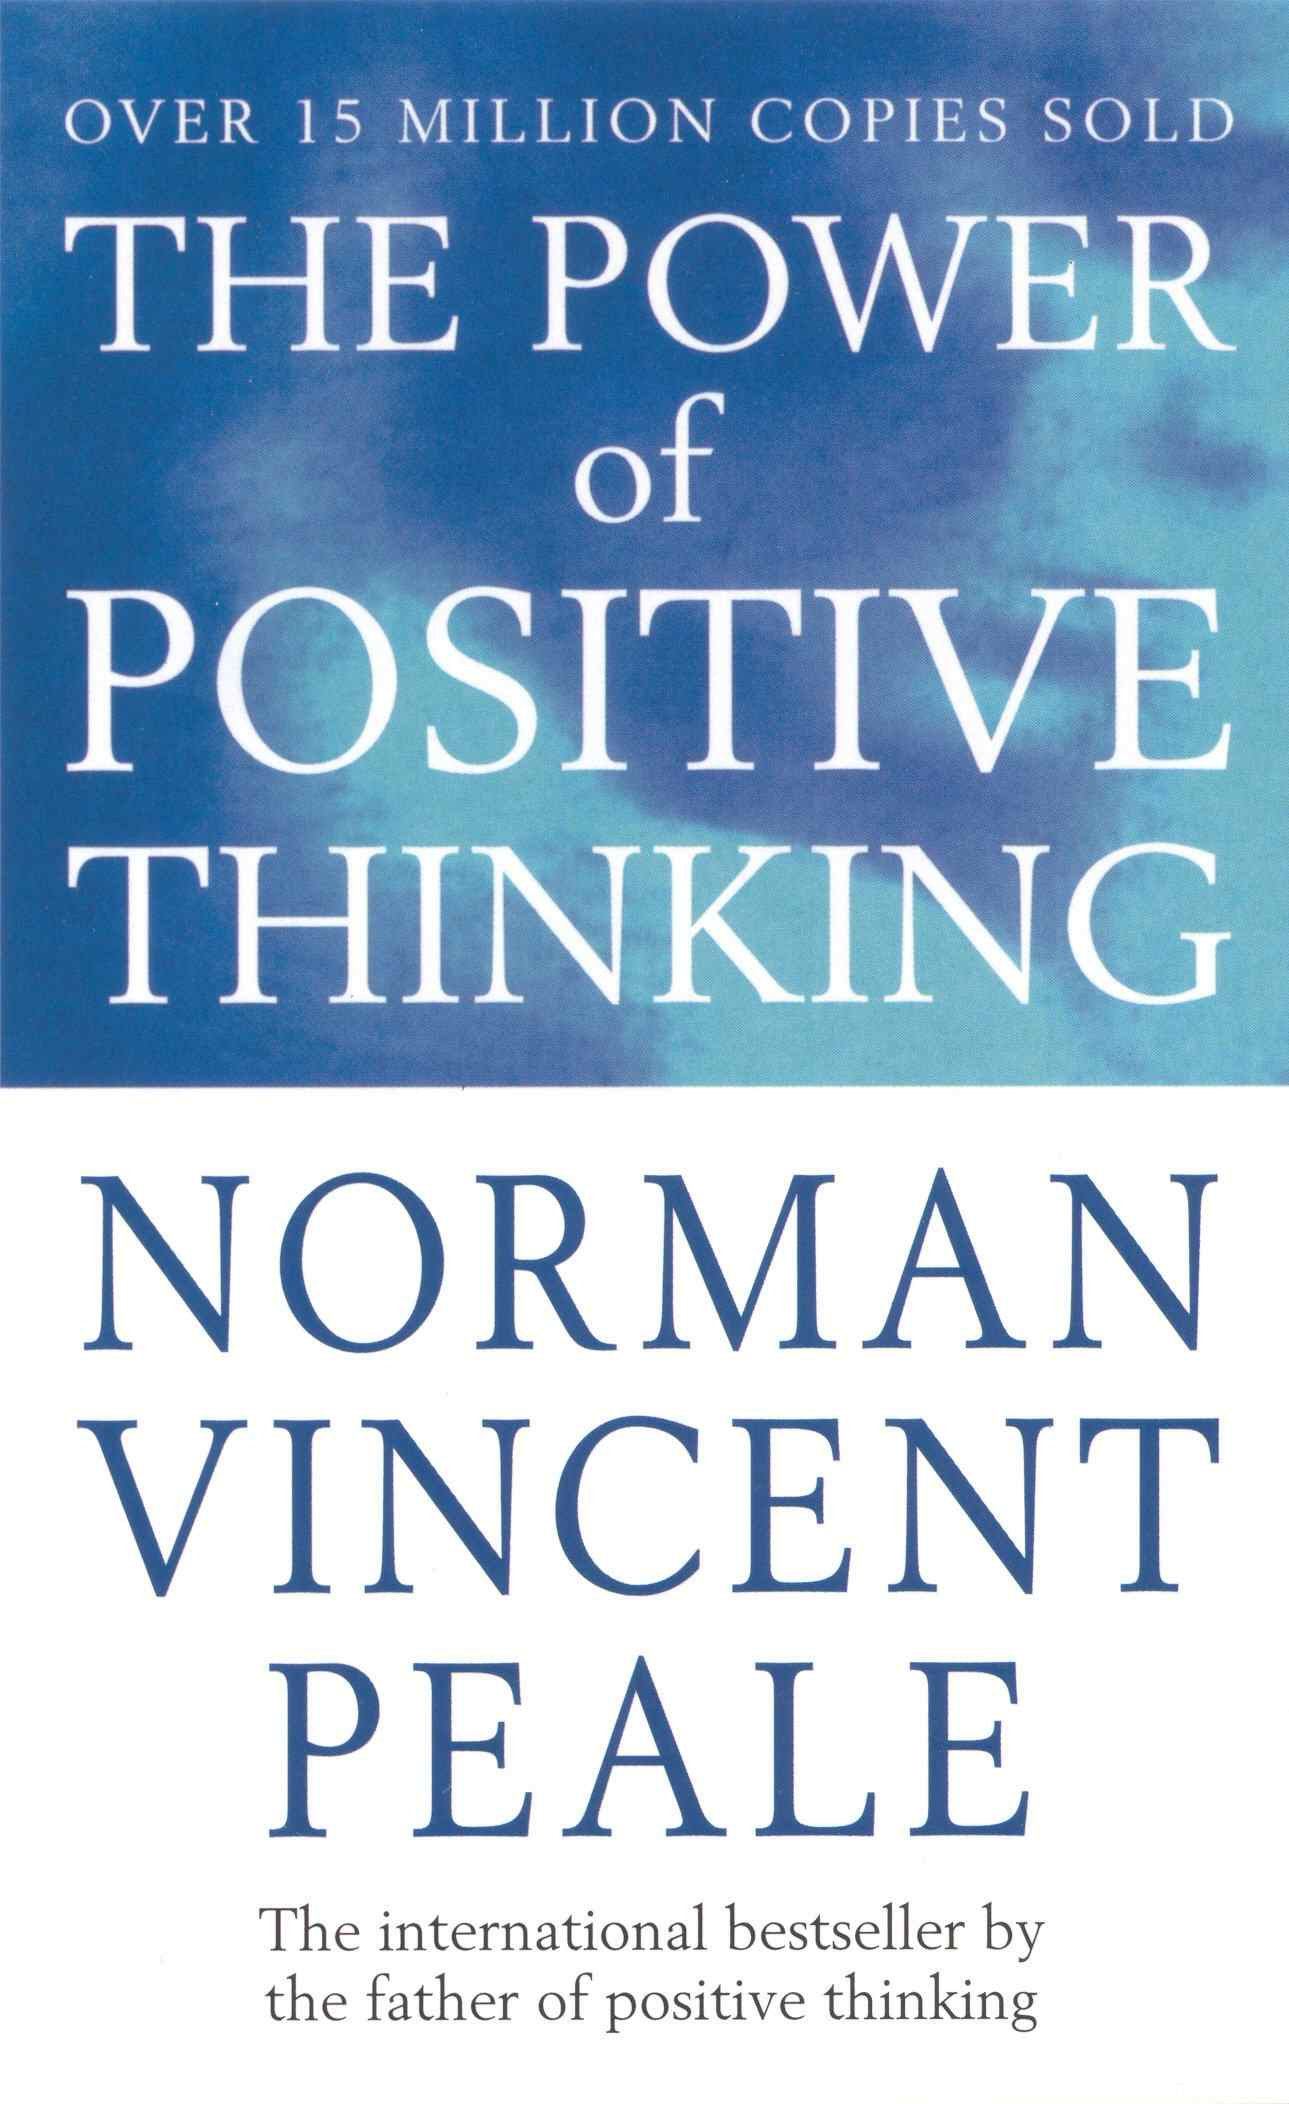 The power of positive thinking by Norman Vincent